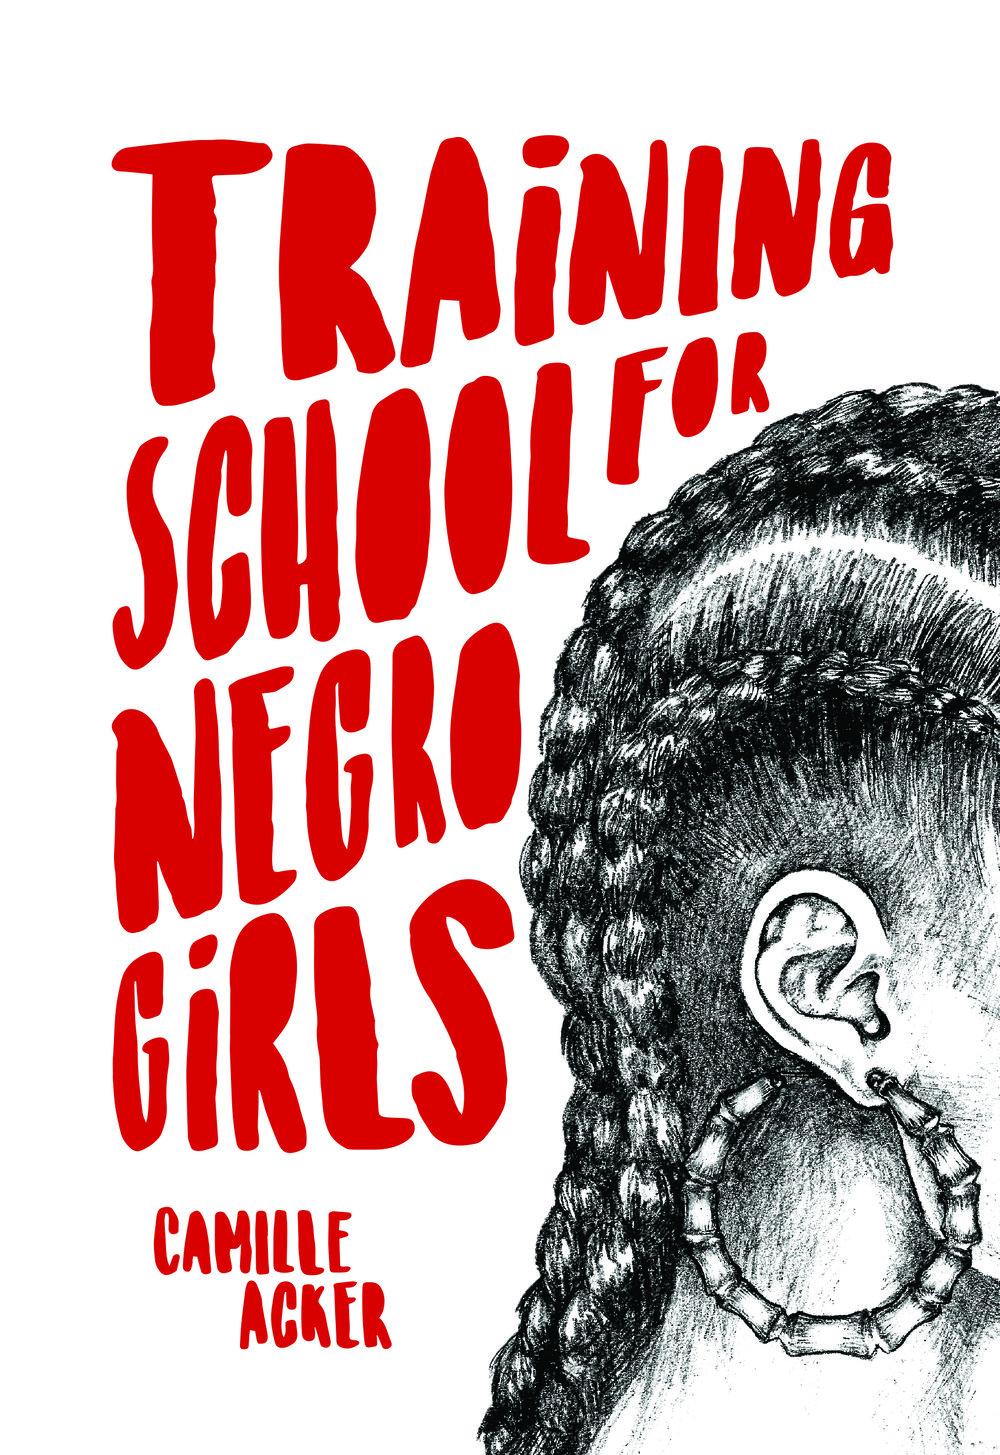 training school for negro girls feminist press